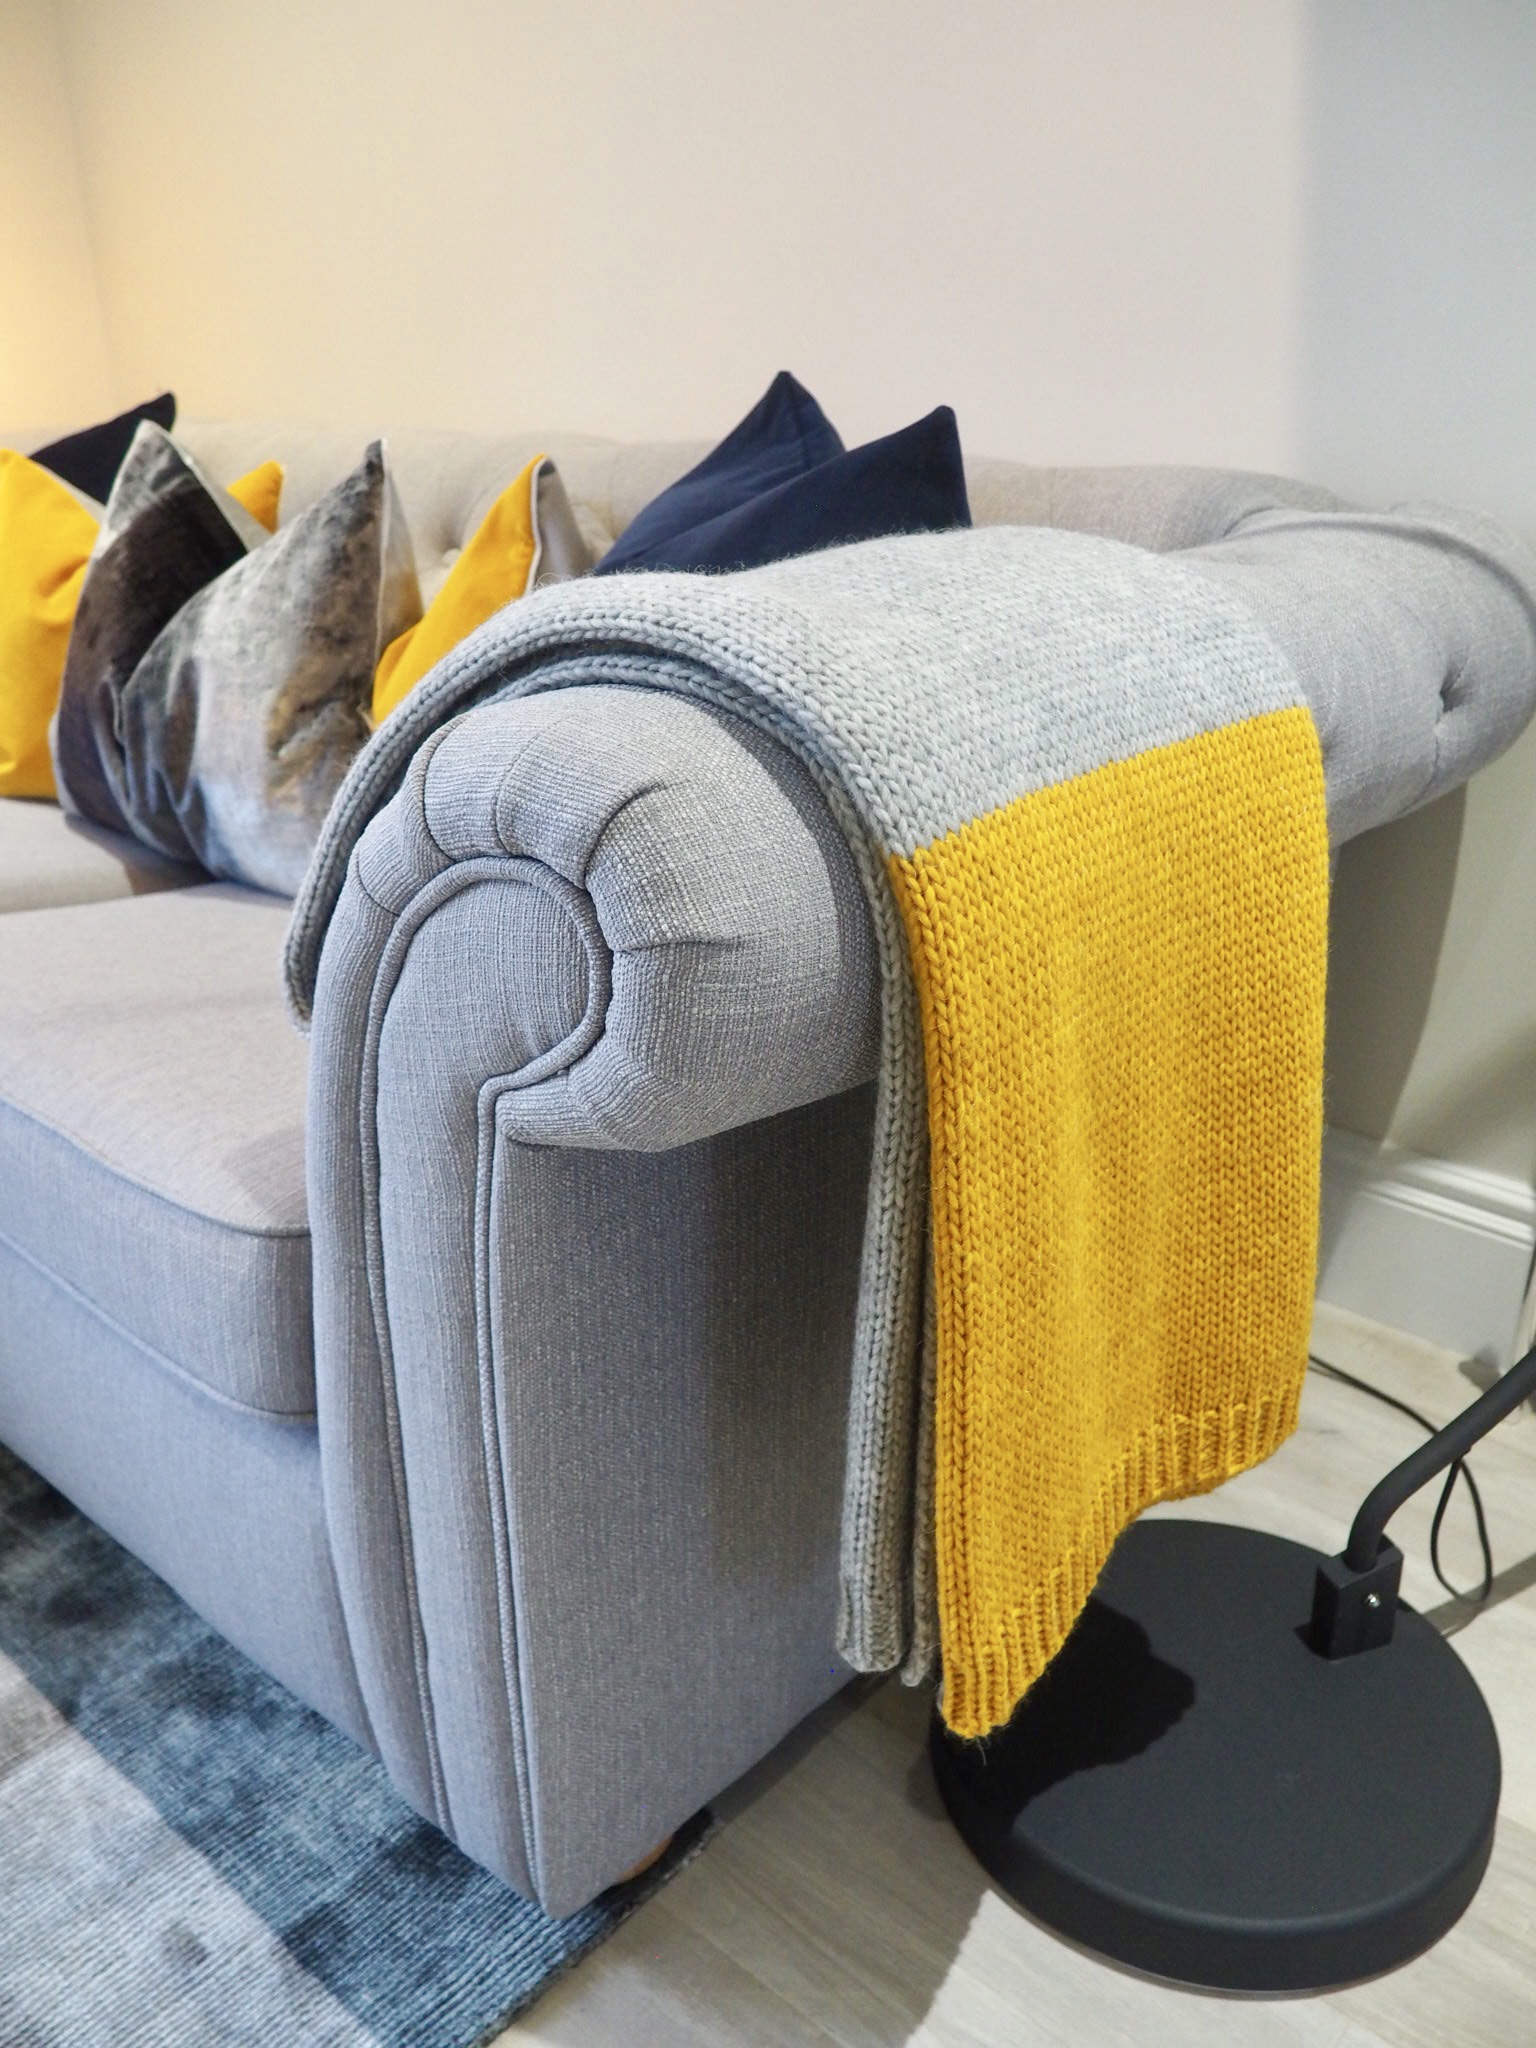 Grey chesterfield sofa with grey and ochre Alpaca throw, and a slection of cushions in navy, ochre and grey velvets